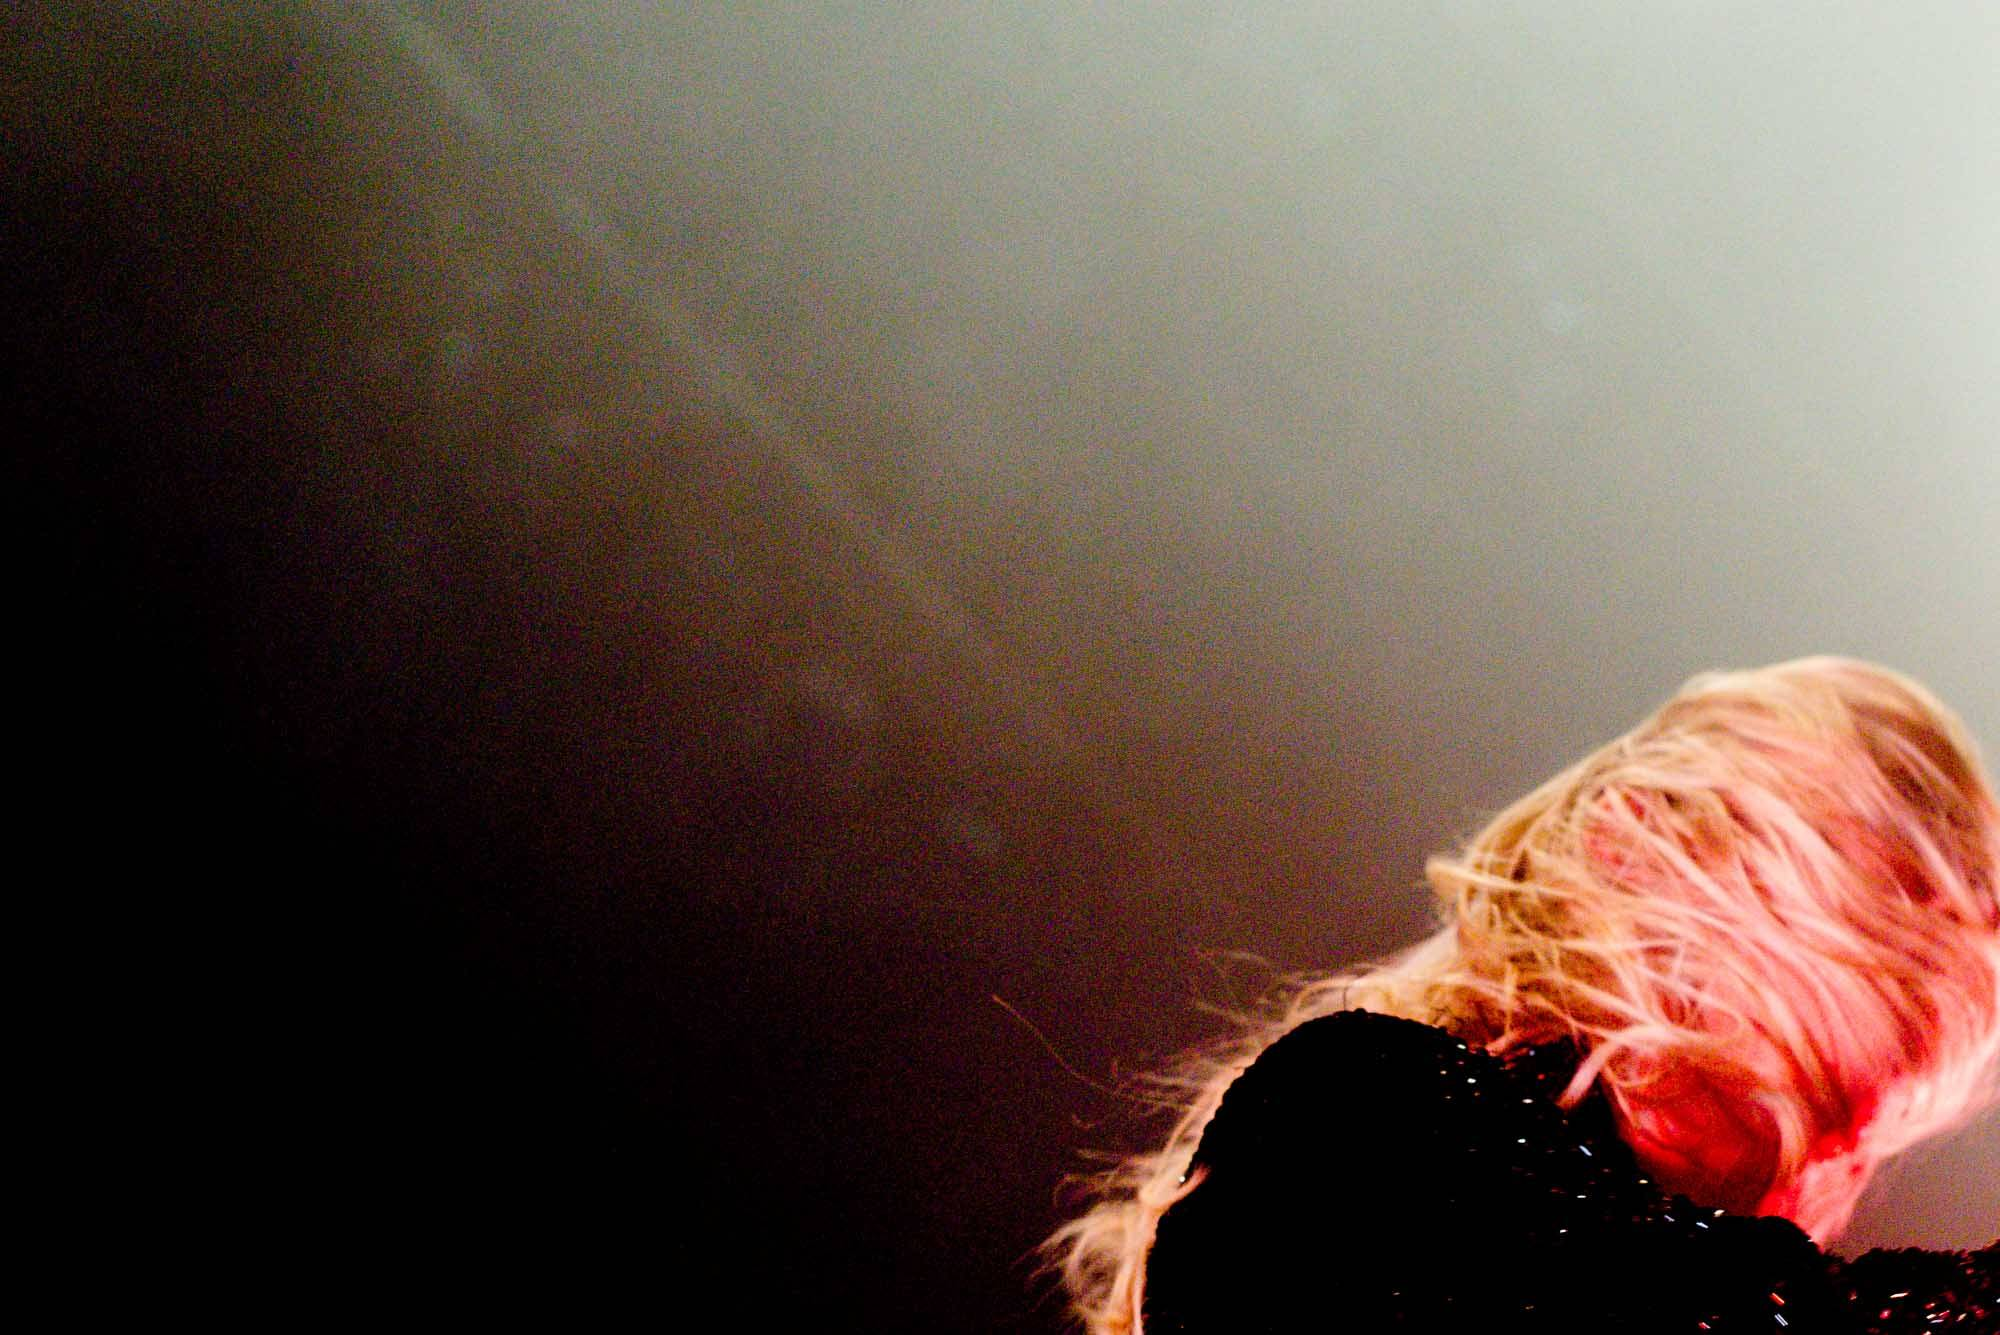 The Pretty Reckless at the Vogue Theatre, Vancouver, Oct 5 2014. Yuko Inoue photo.